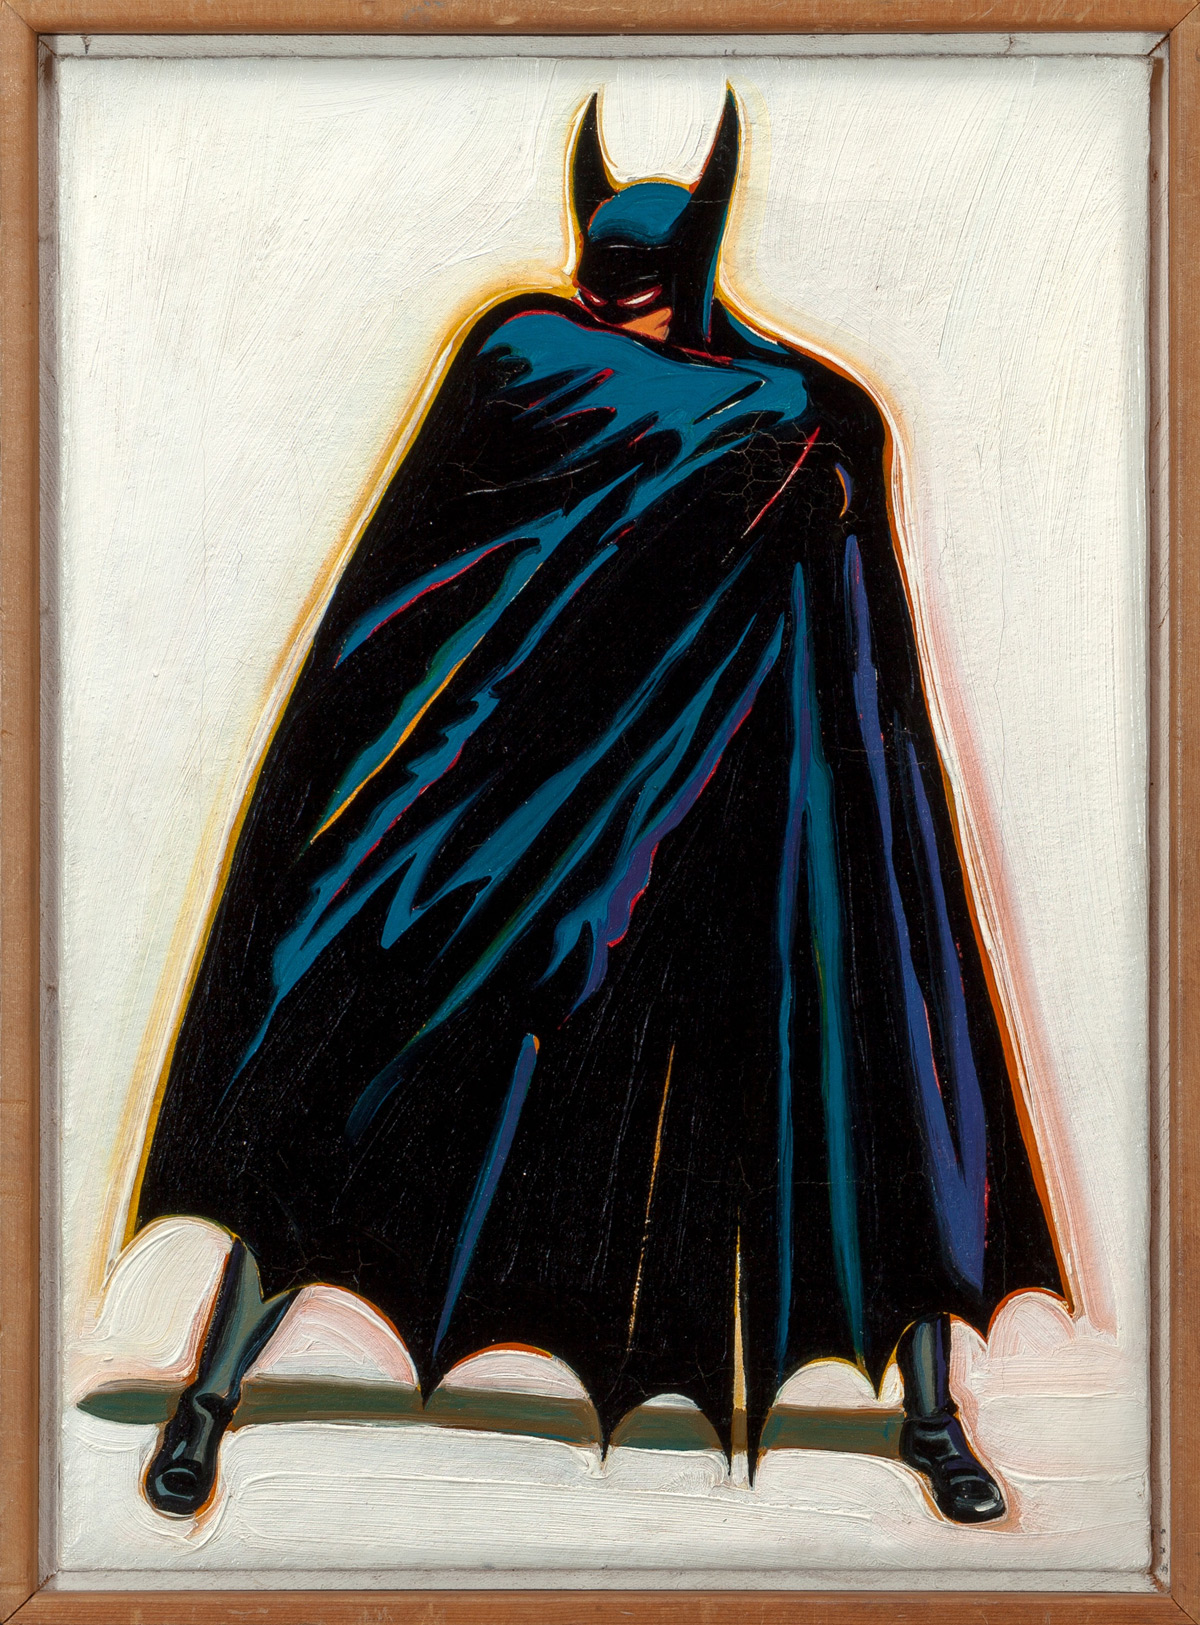 Long 'Missing' 1962 Mel Ramos Batman Painting Could Fetch $100,000 At Auction